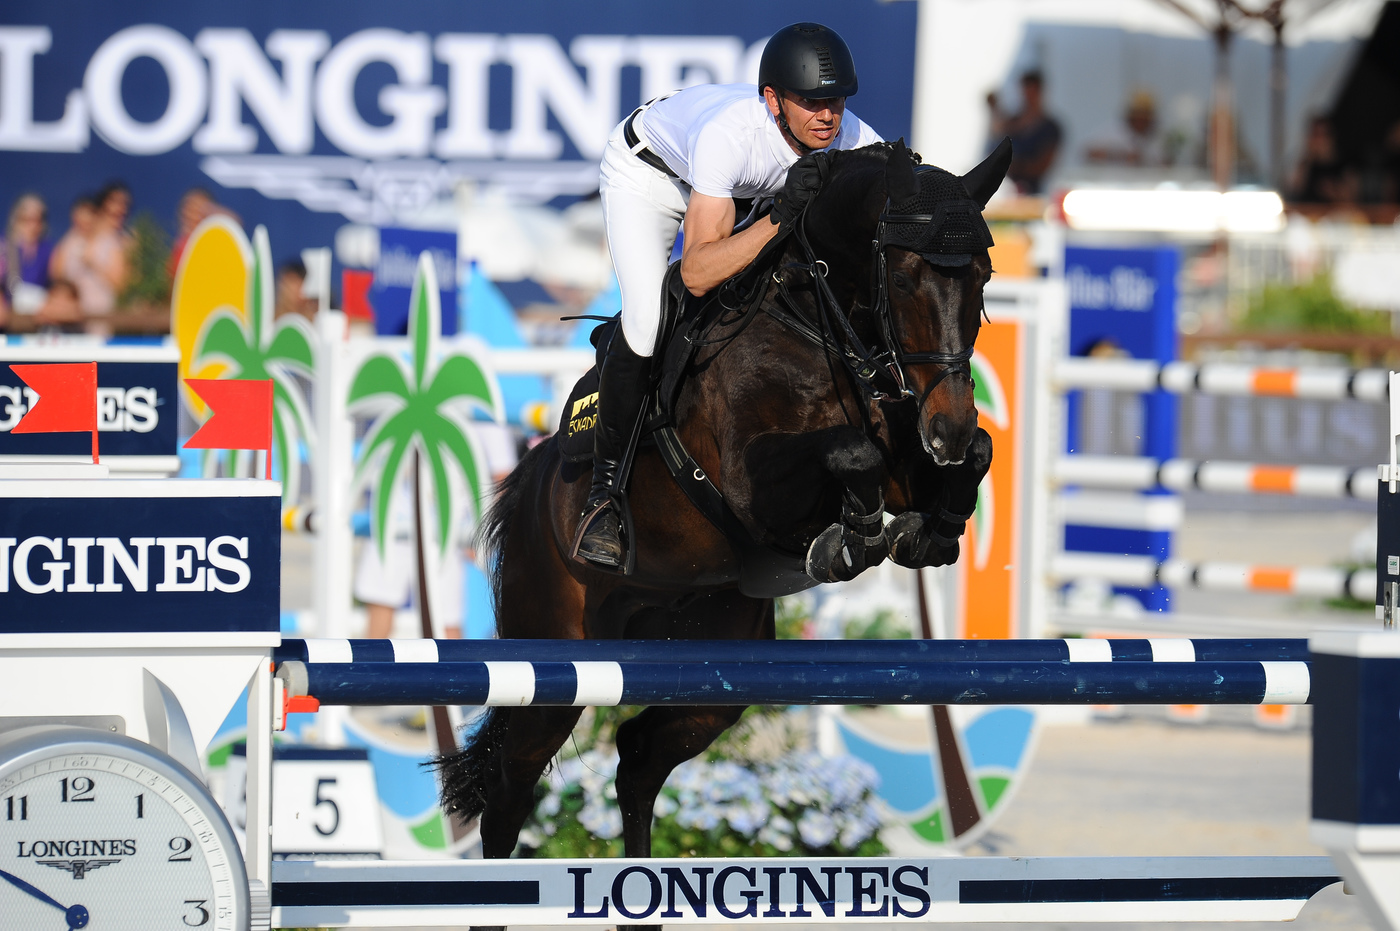 Longines Show Jumping Event: Marco Kutscher wins the Longines Grand Prix of the 2nd edition of the Longines Athina Onassis Horse Show 3